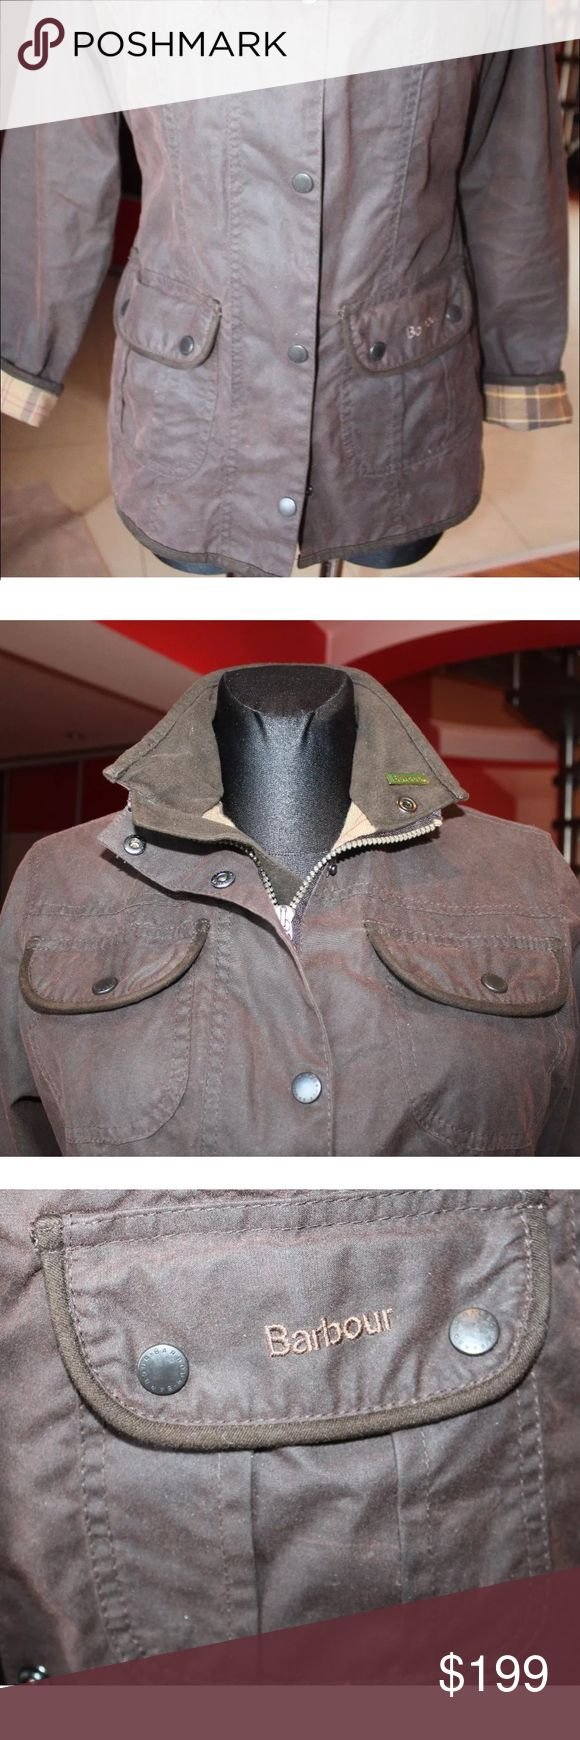 Barbour women's jacket WAXED Waxed Barbour jacket size 4 perfect, new condition Barbour Jackets & Coats Utility Jackets